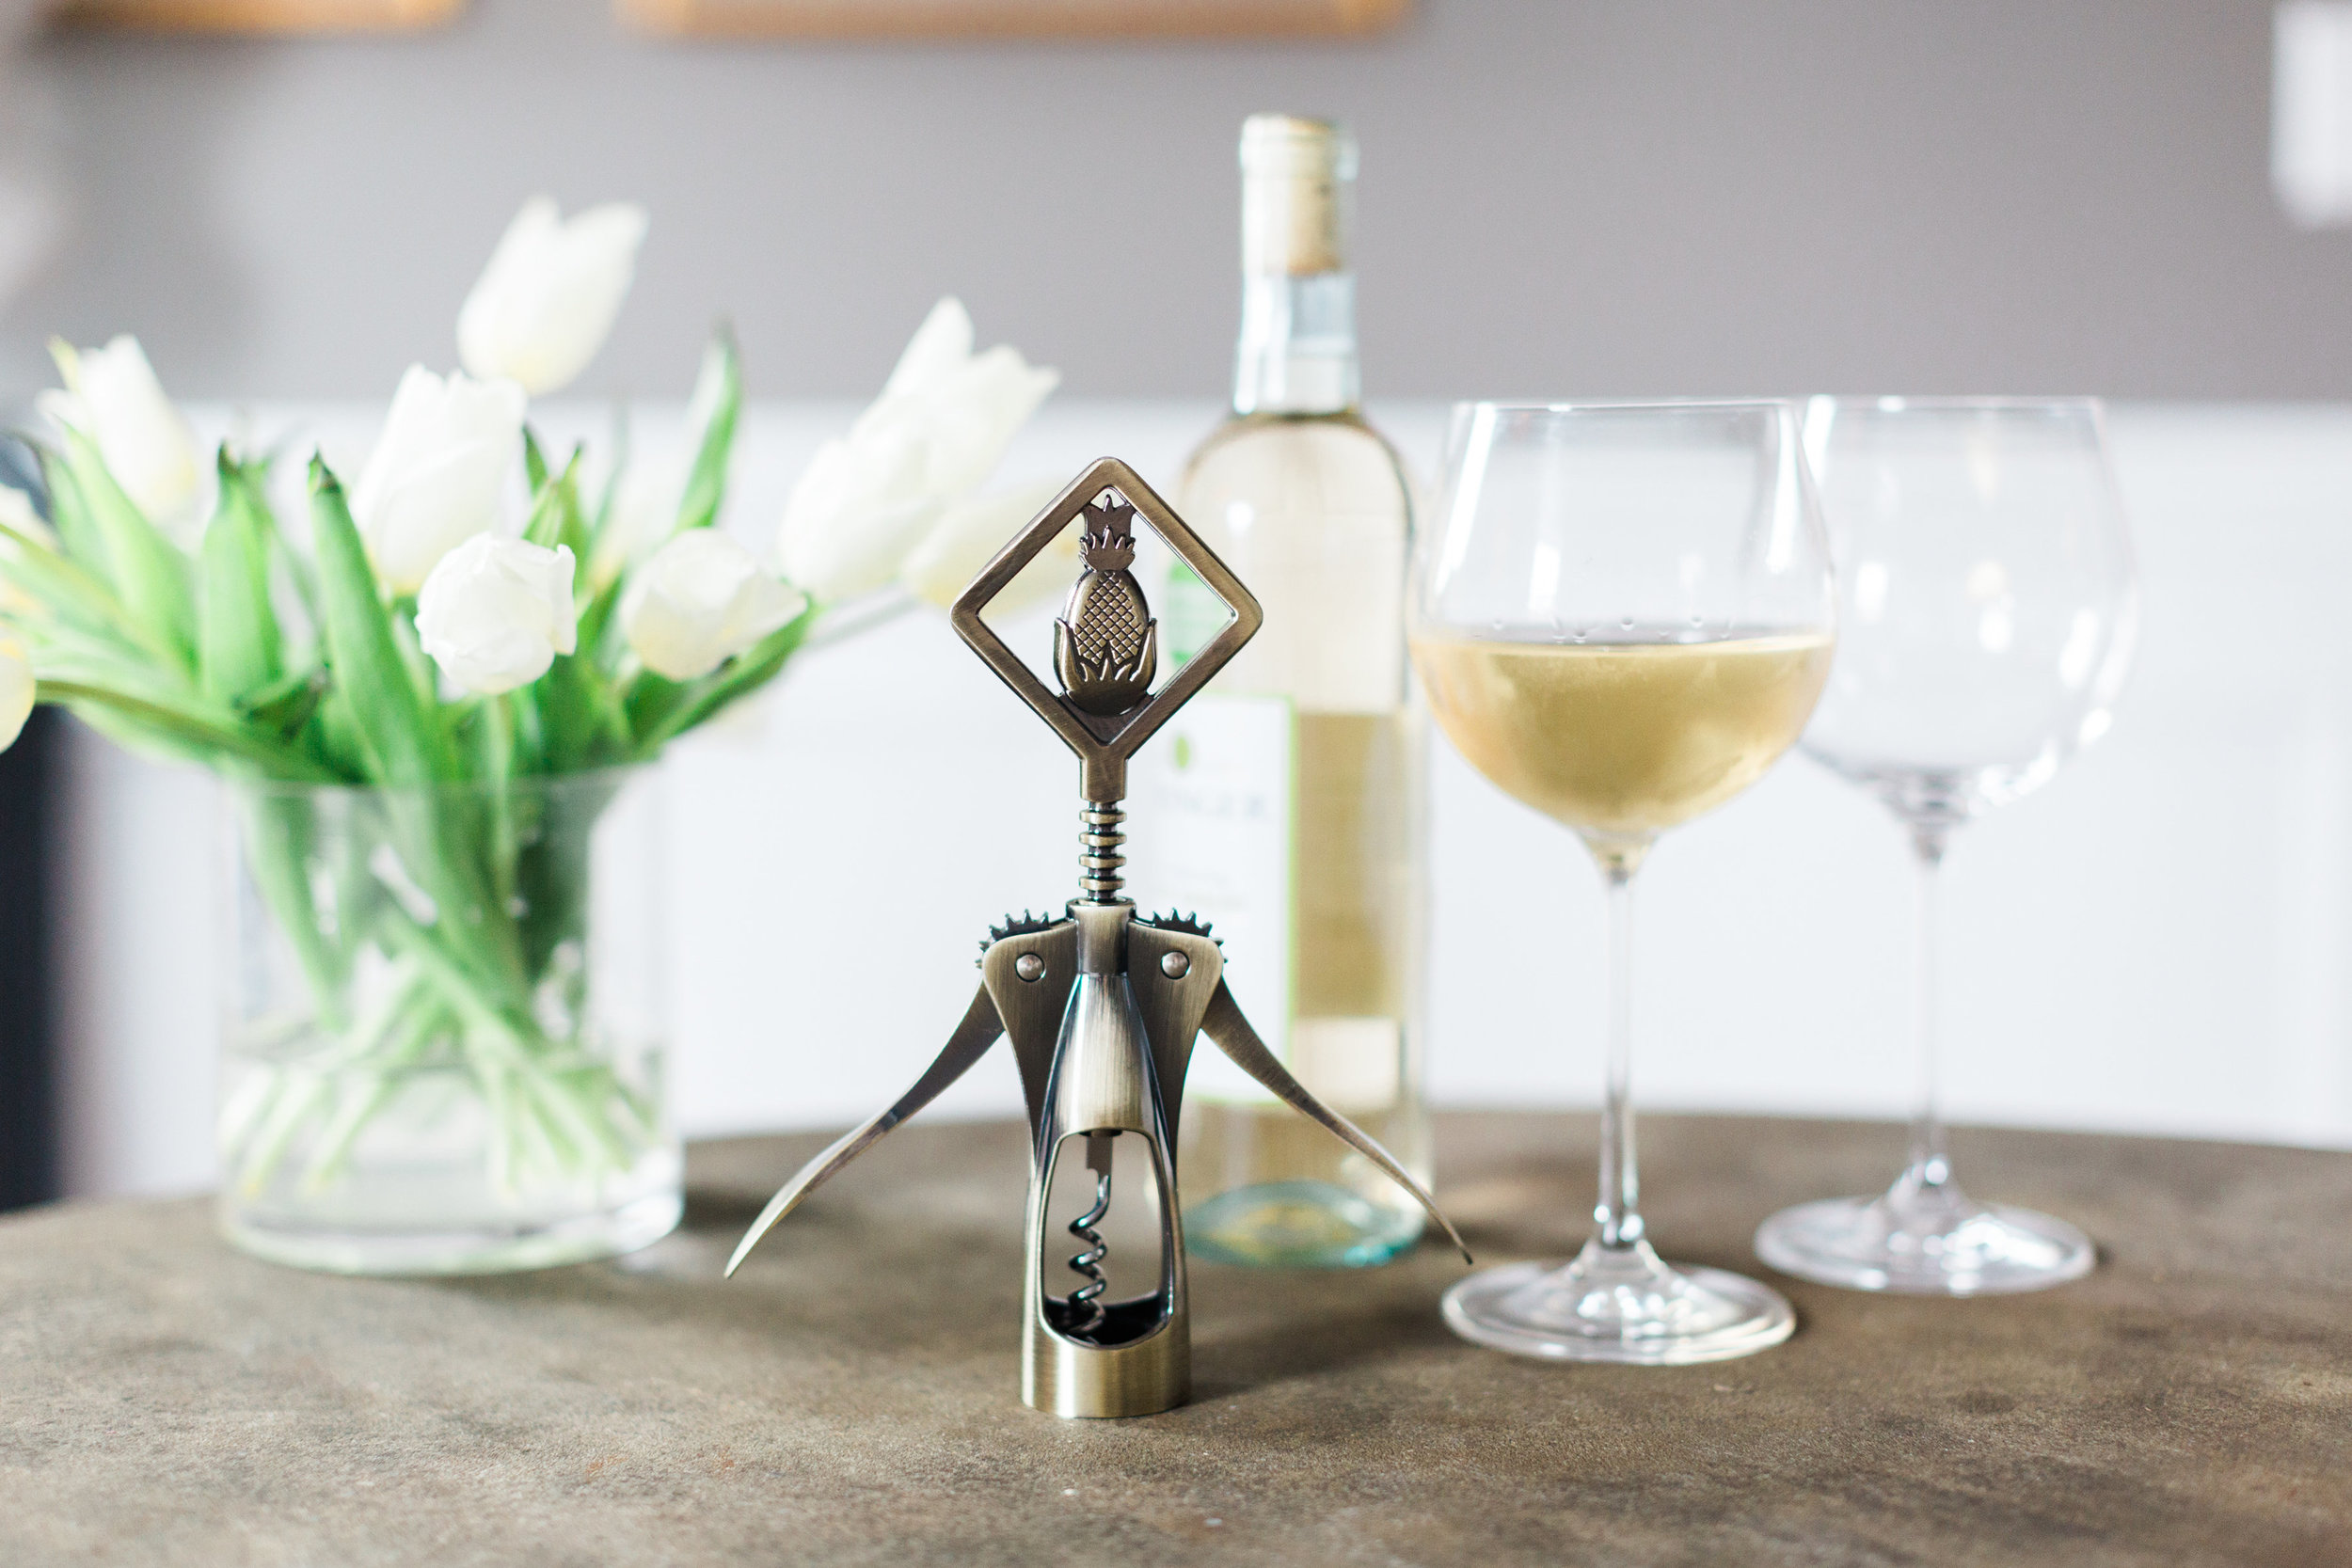 Adorable pineapple wine opener by  Greenville Society . 2017.